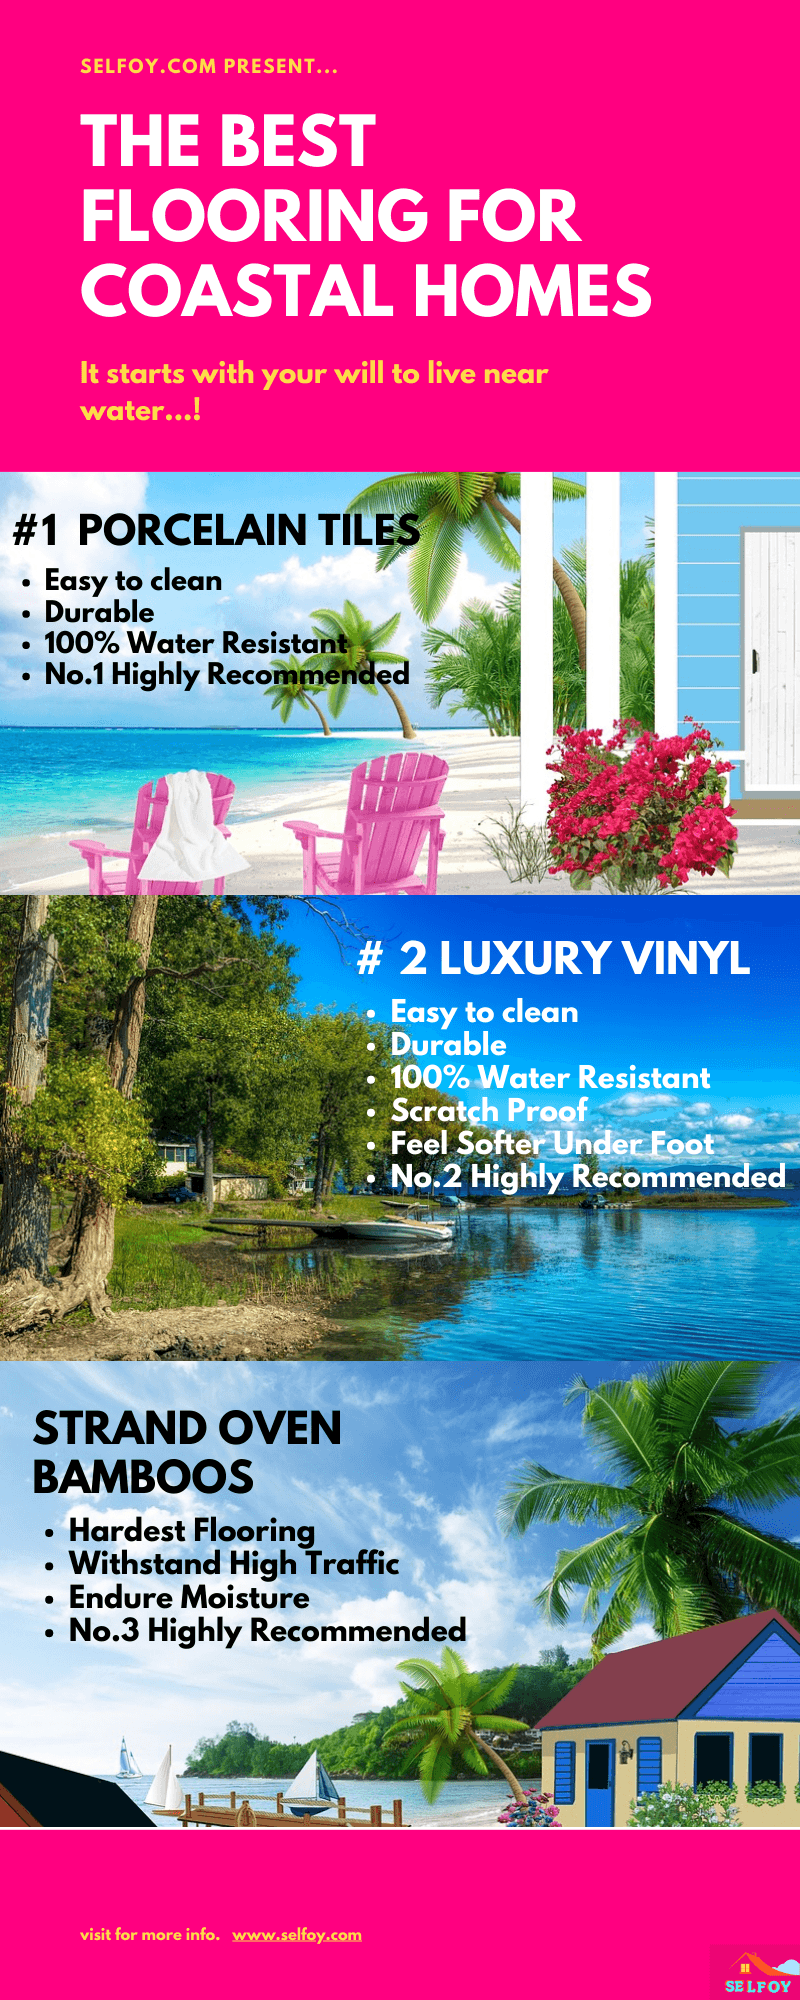 Info graphics on Best Flooring For Coastal Homes or Beach Homes or Home near water